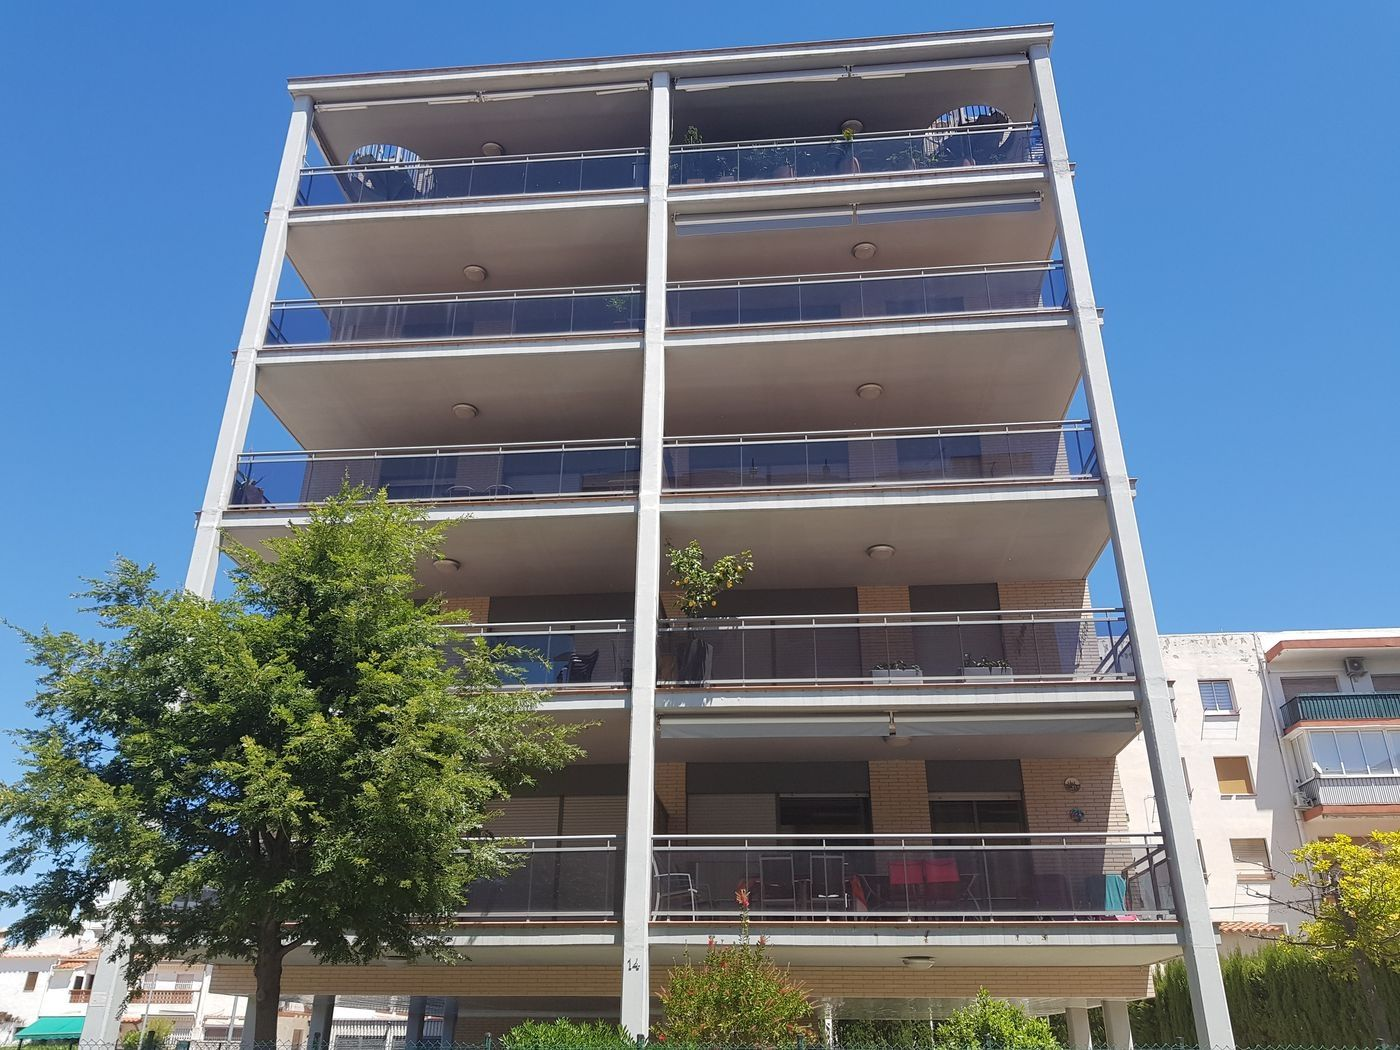 Appartement in Carrer roca negra (de la), 14. Con terraza  y cerca de la playa